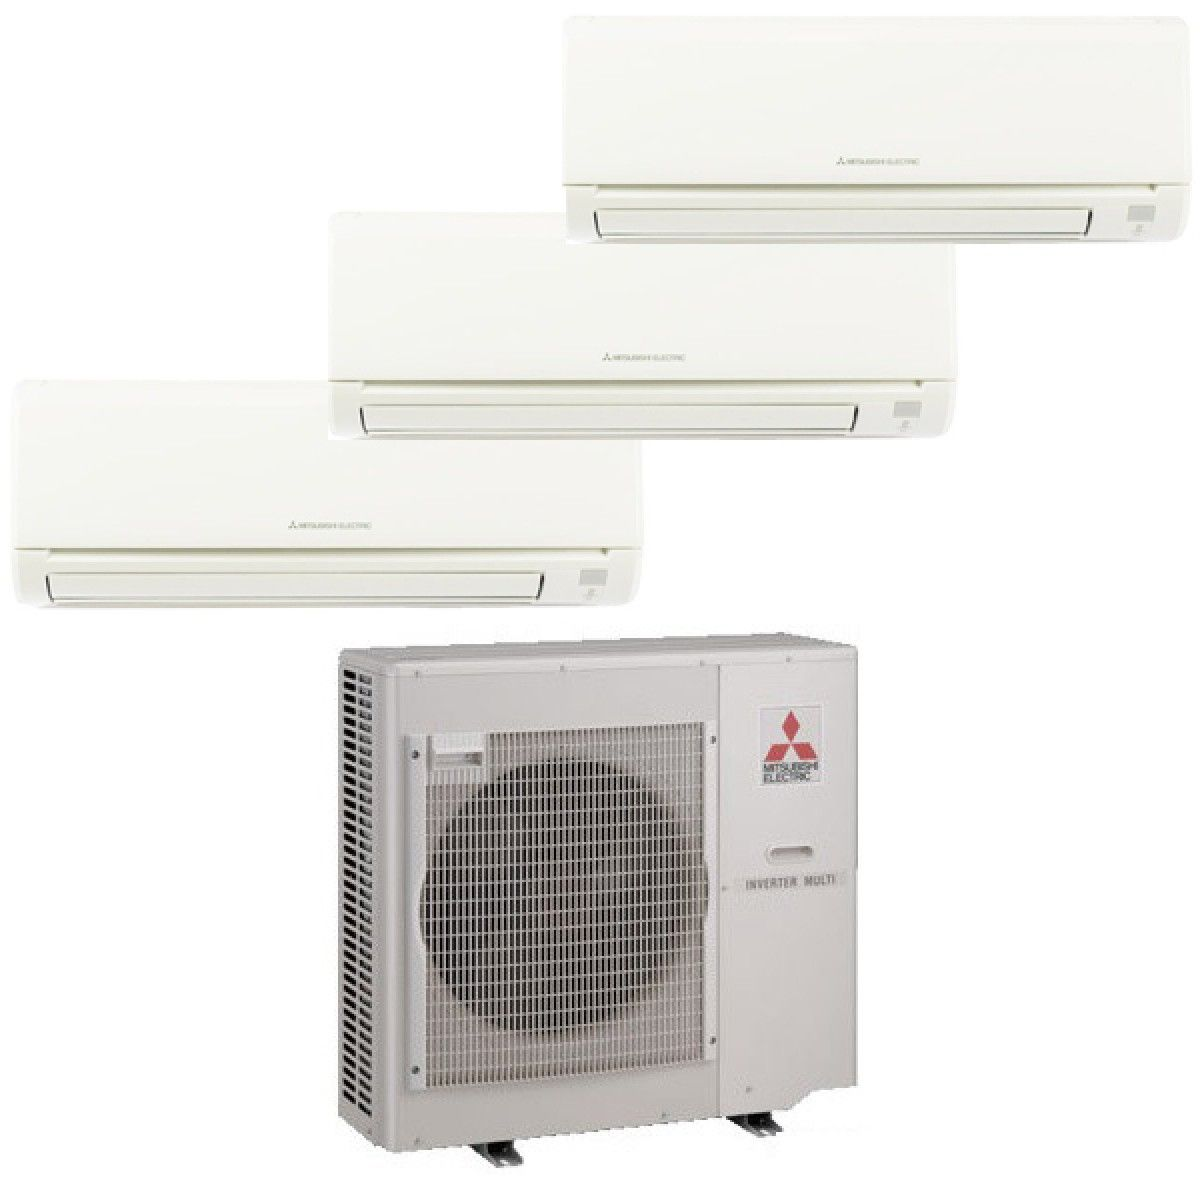 Mitsubishi Ductless Mitsubishi Multi Room Ductless Air Conditioning Heat Pumps